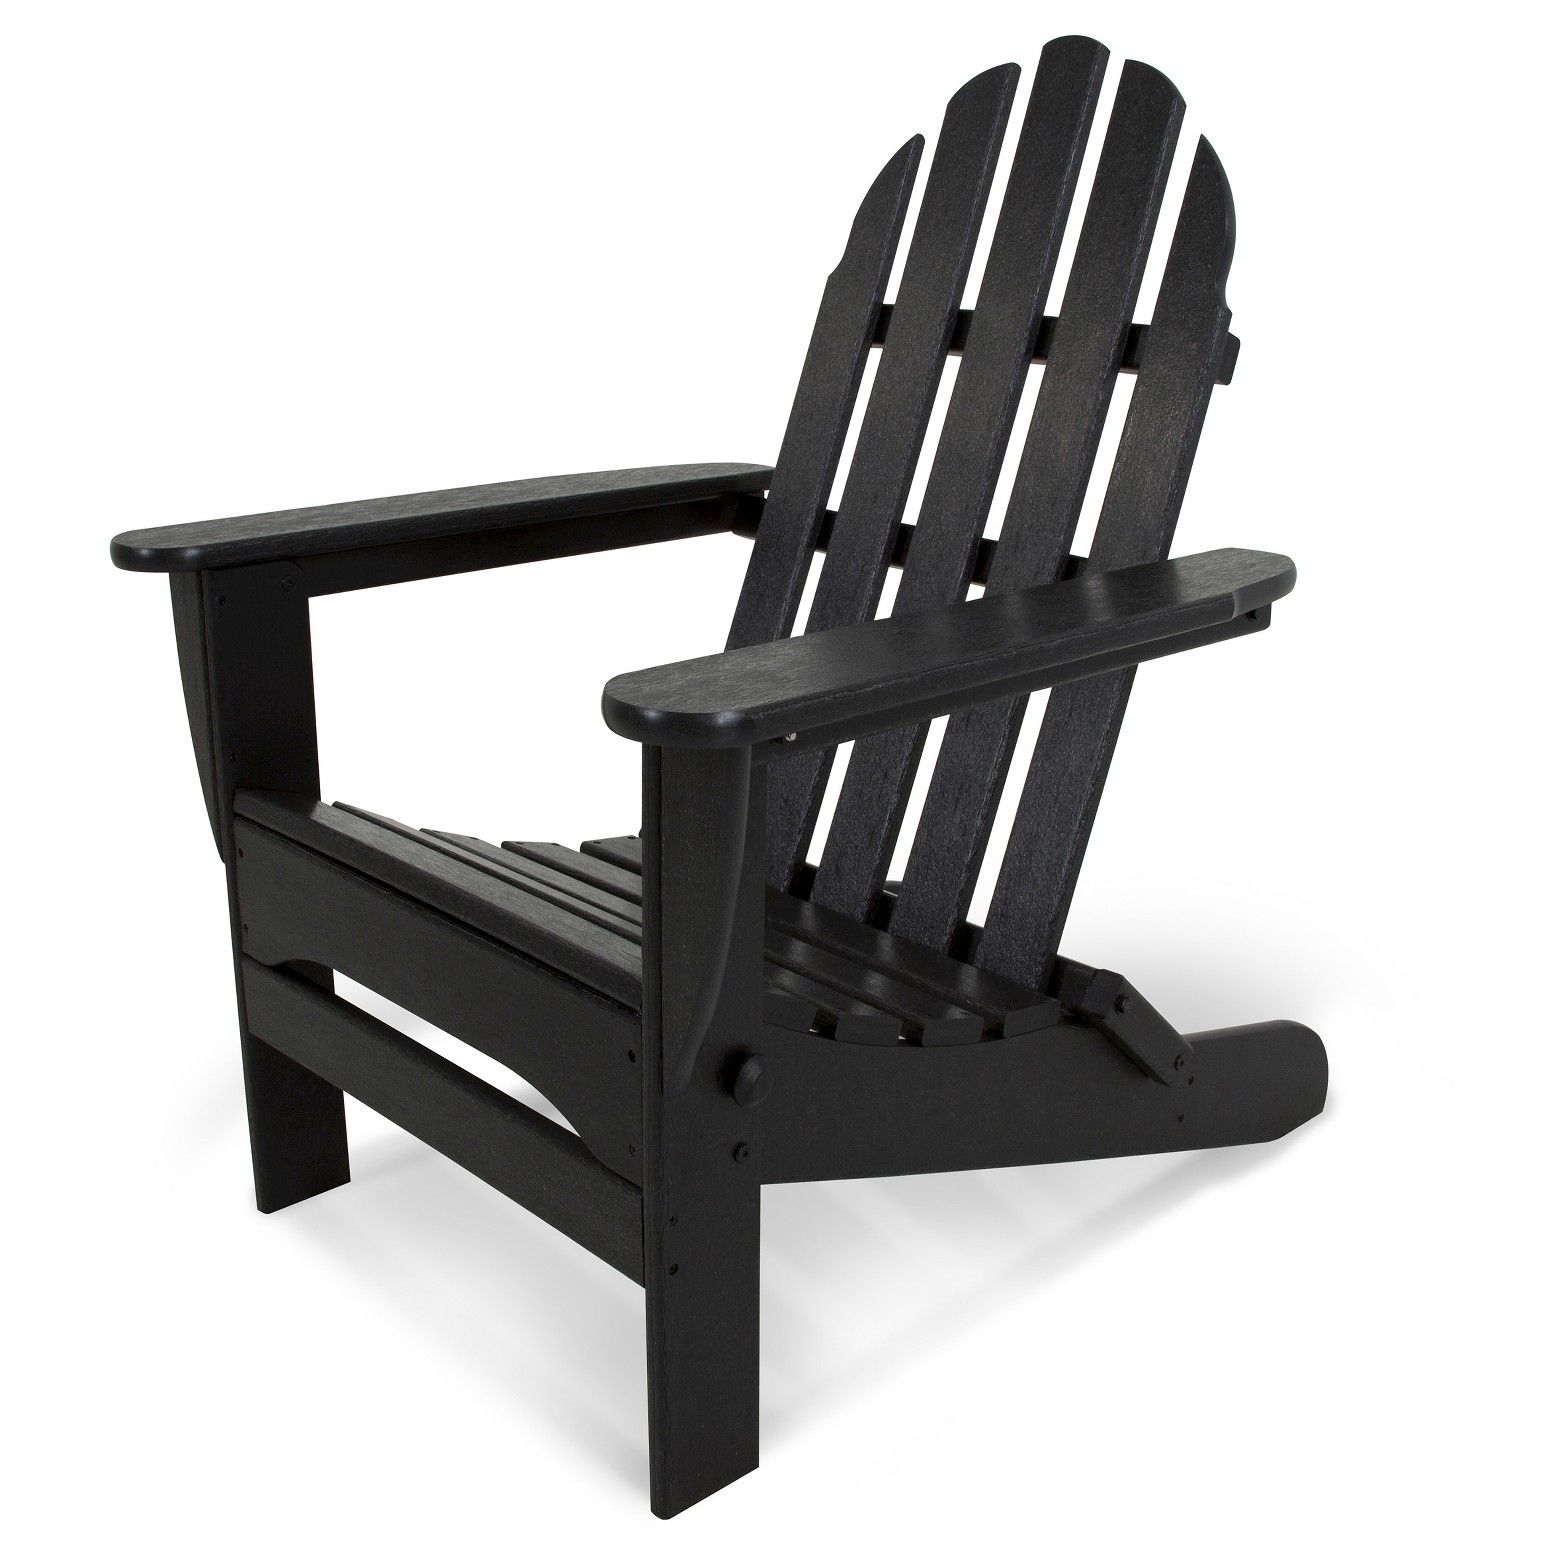 for front porch POLYWOOD Classic Adirondack Black Plastic